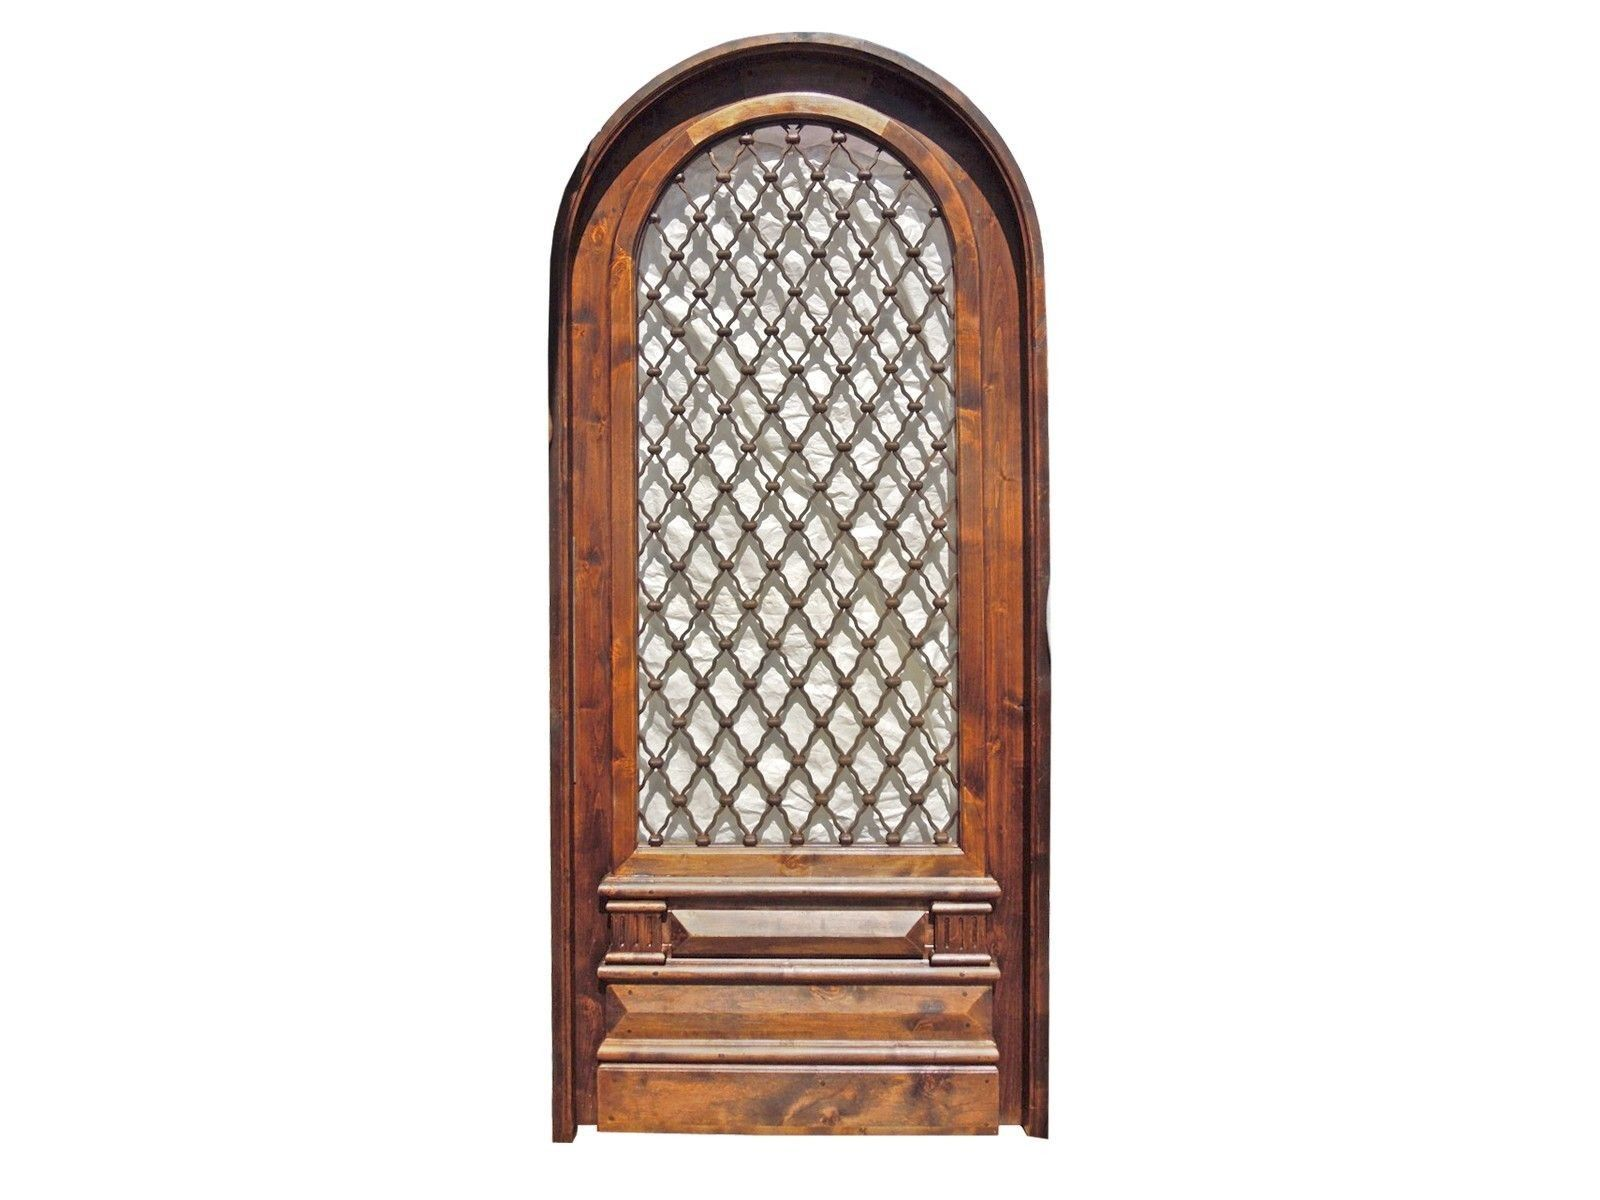 Round top front door window inserts - Amazing Arched Single Door With Wrought Iron Insert And Ready To Install Double Glass Unit For Insulation Hand Forged Hinges On Glass Frame And Door Leaf